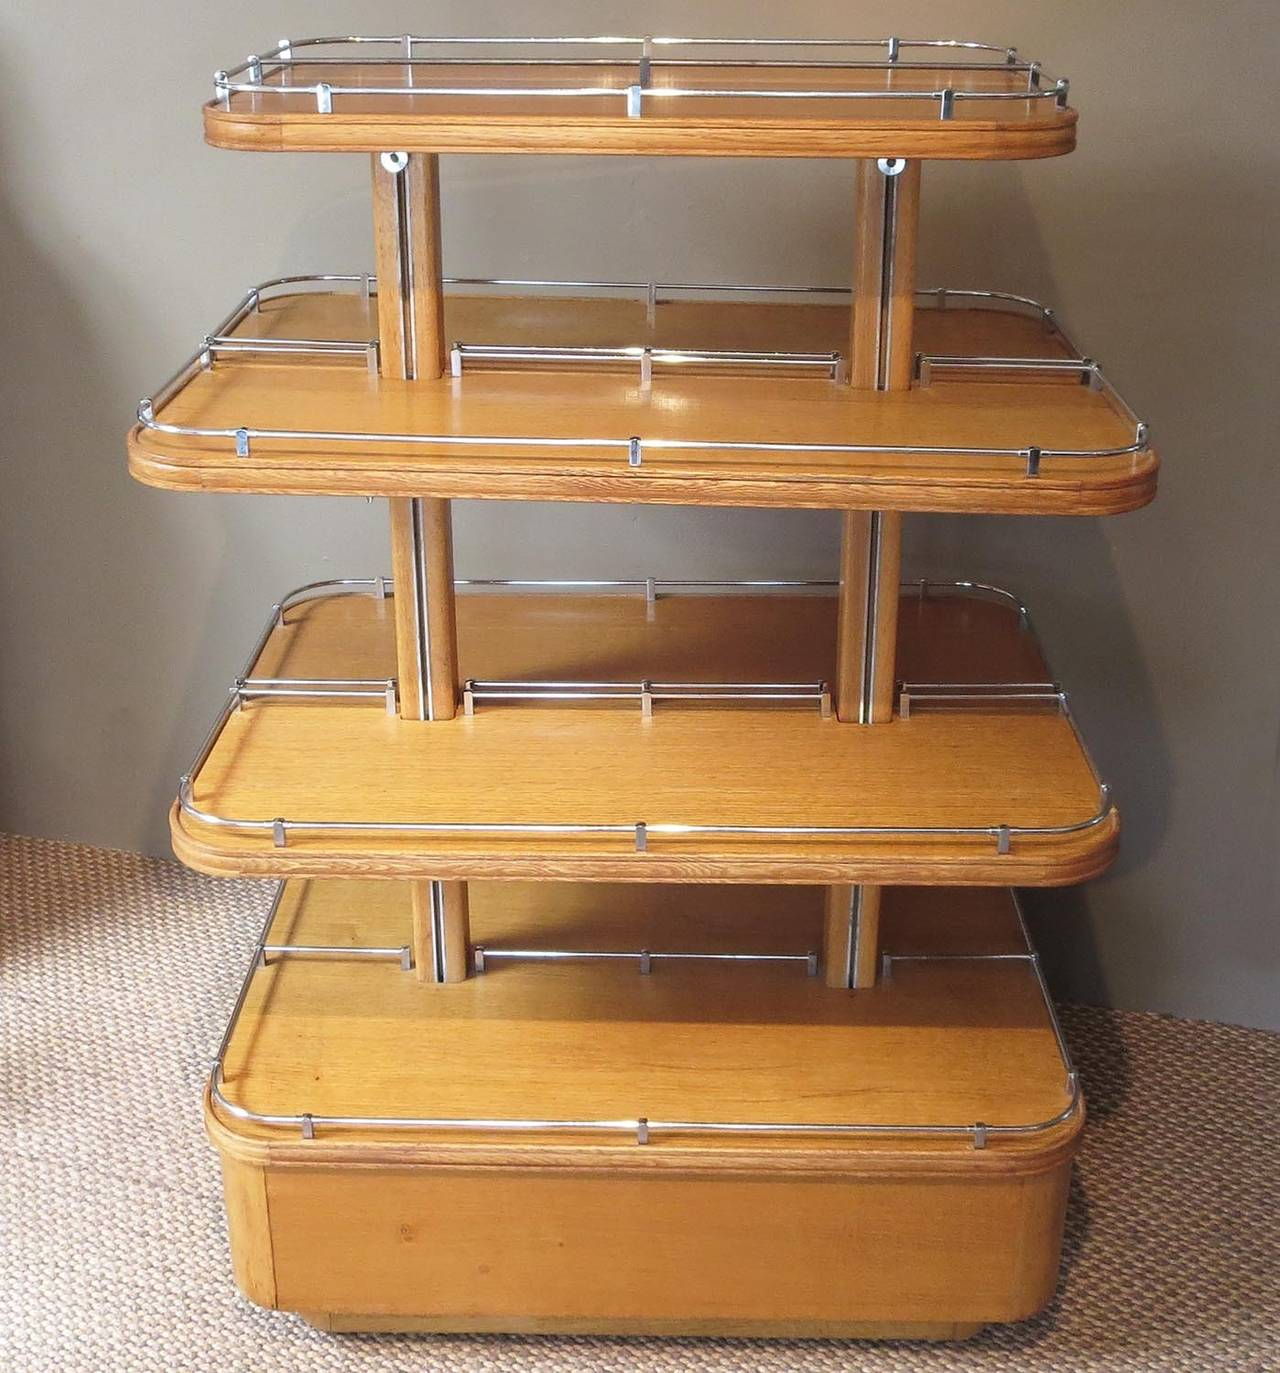 Although this ocean liner influenced tower can be used for any number of objects, it would be best served as an open display for shoes in a dressing room. Each of the two center shelves are adjustable in height, with the top and bottom units fixed